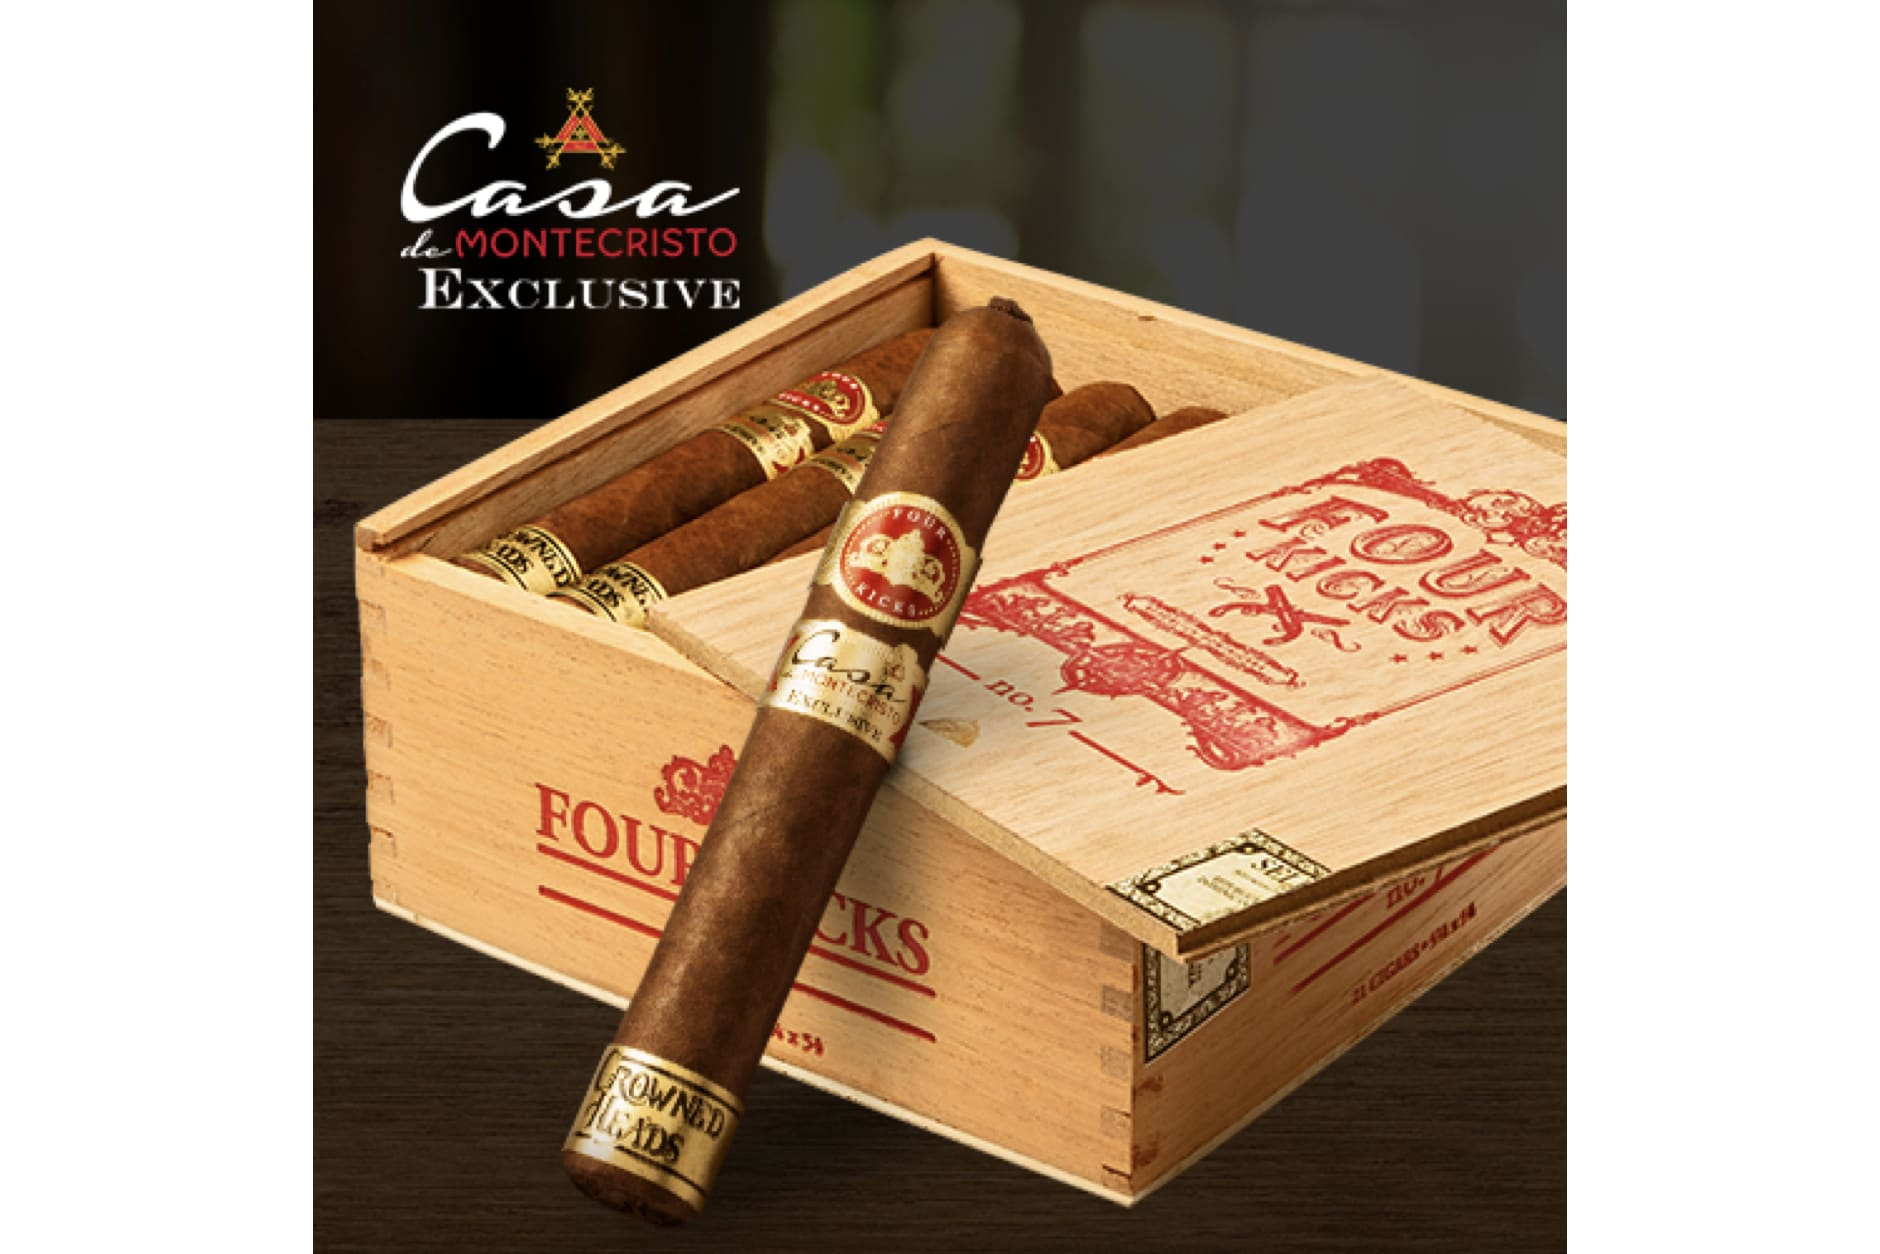 Crowned Heads Sends Four Kicks No. 7 to Casa de Montecristo Stories Featured Image